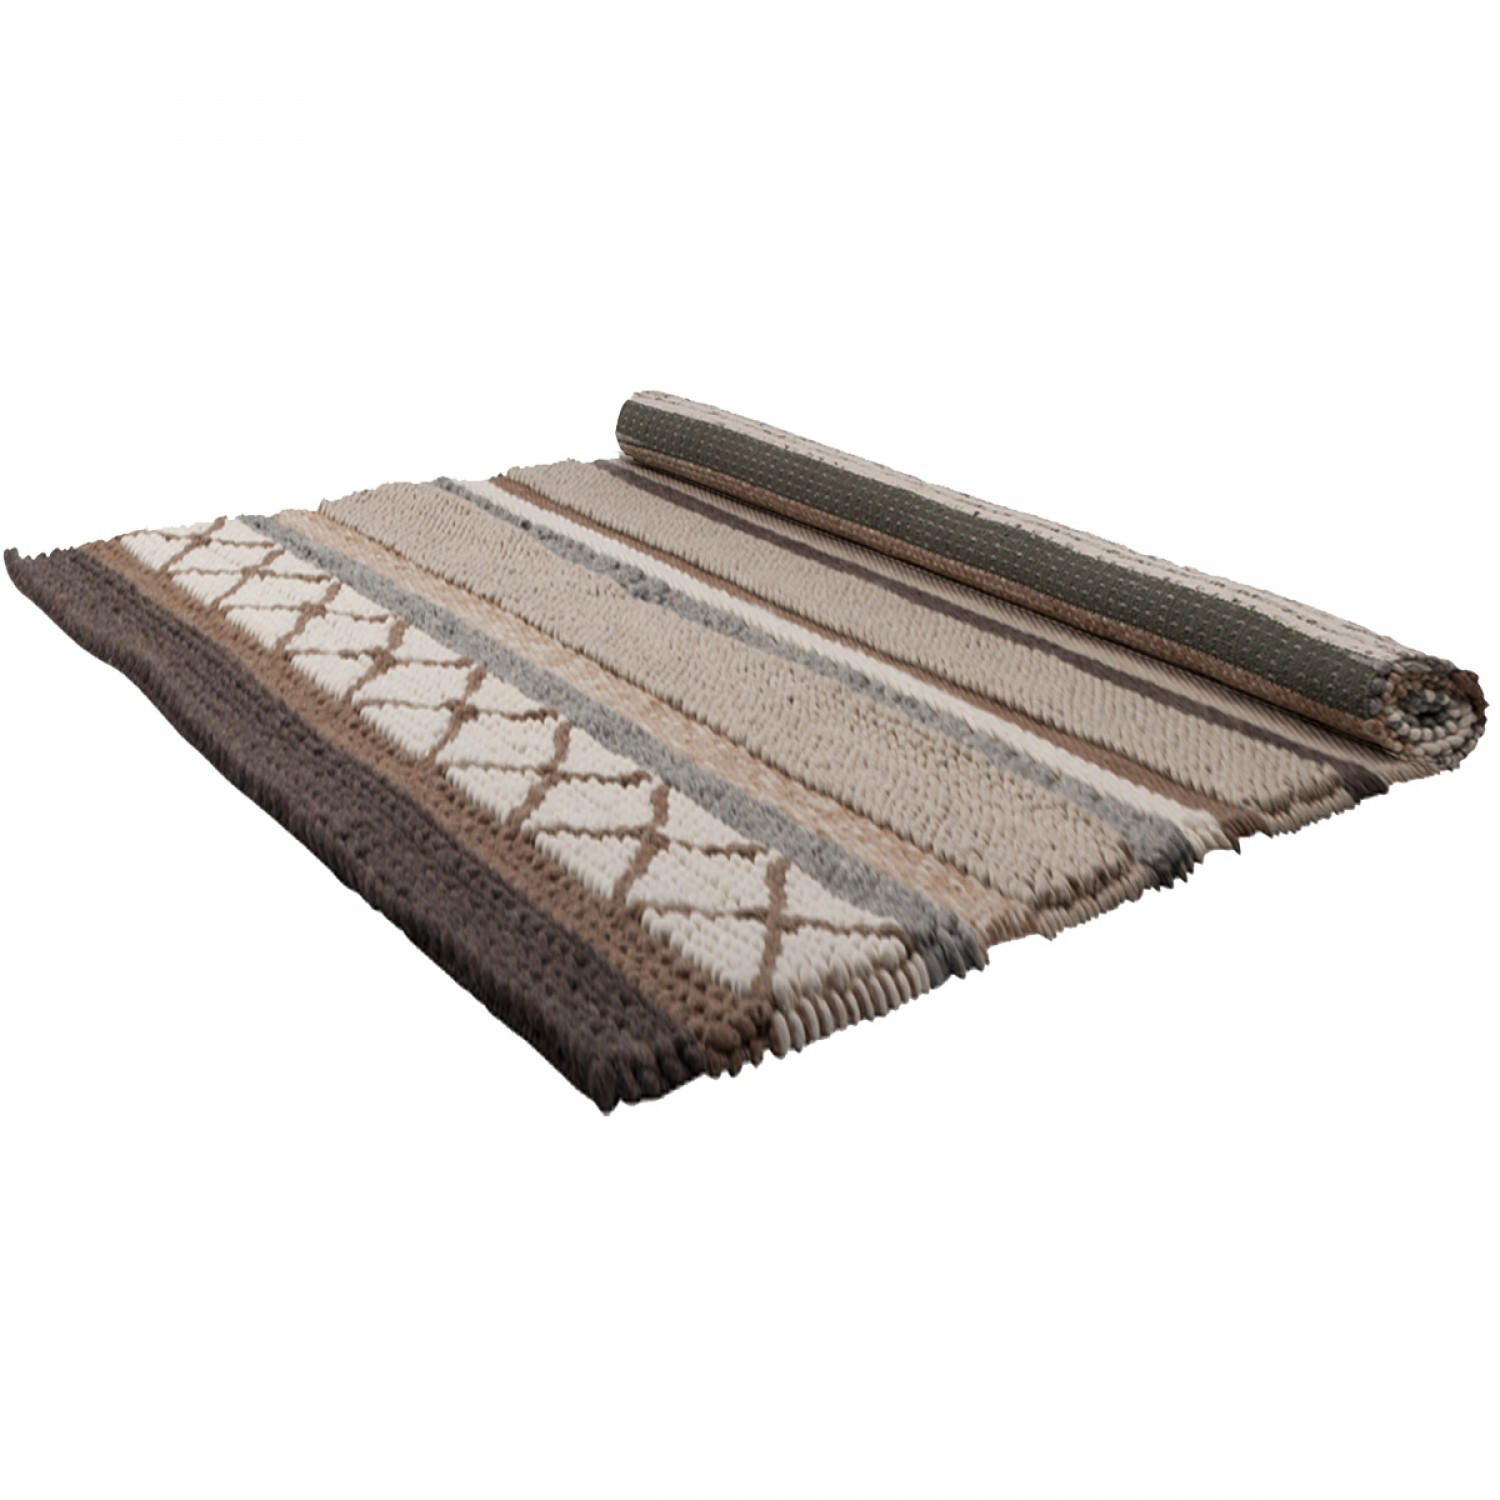 Tapis Salon Beige Marron Tapis Beige Et Marron Tapis Salon Beige Marron Caen Table